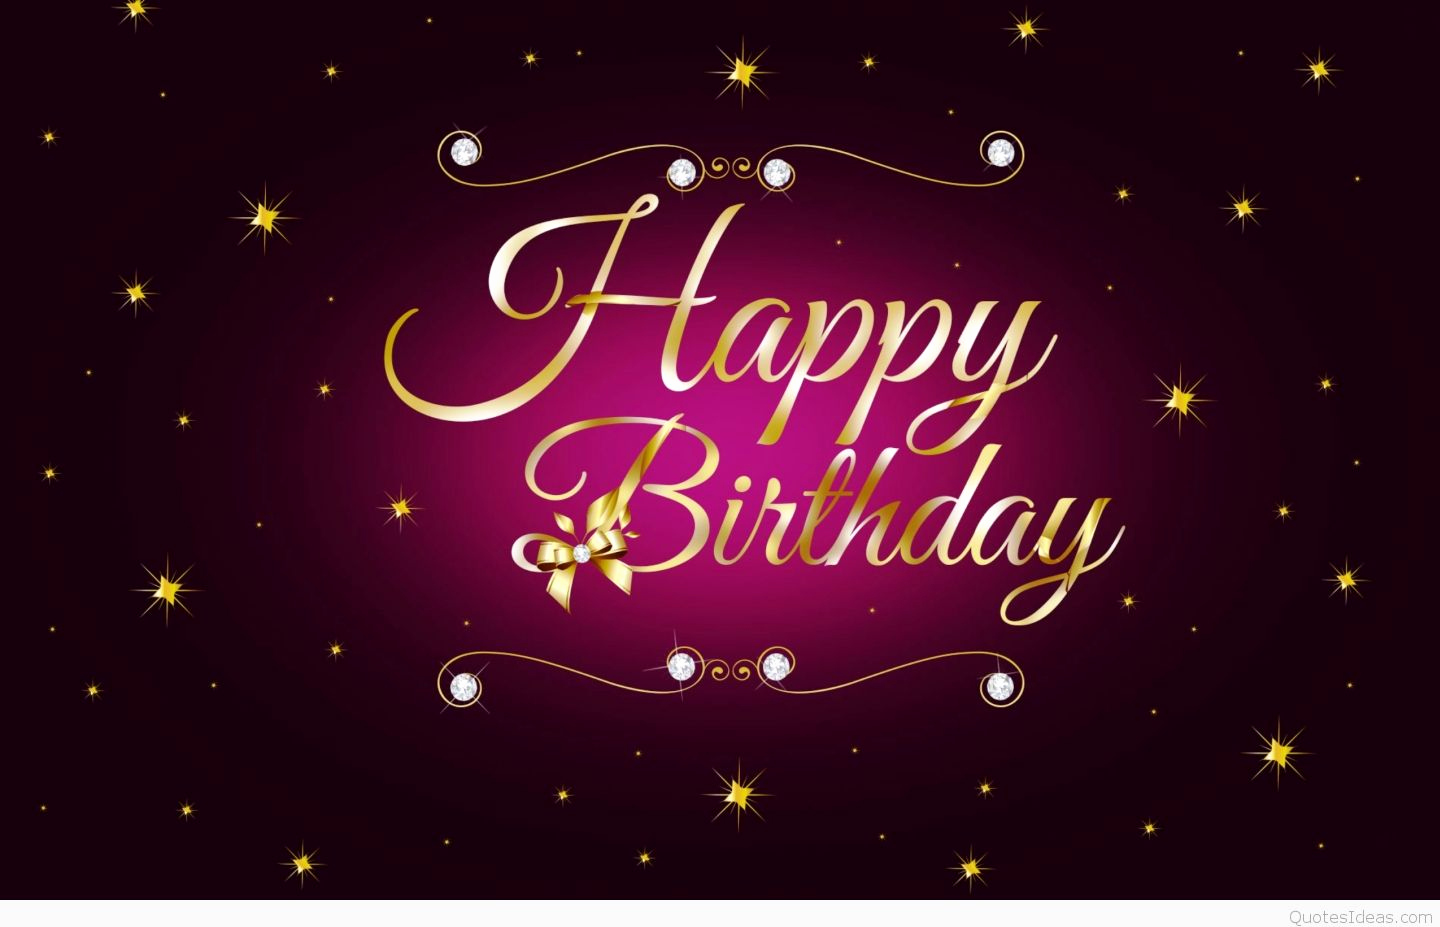 Free Happy Birthday Picture Inspirational Happy Birthday Wallpapers Quotes and Sayings Cards